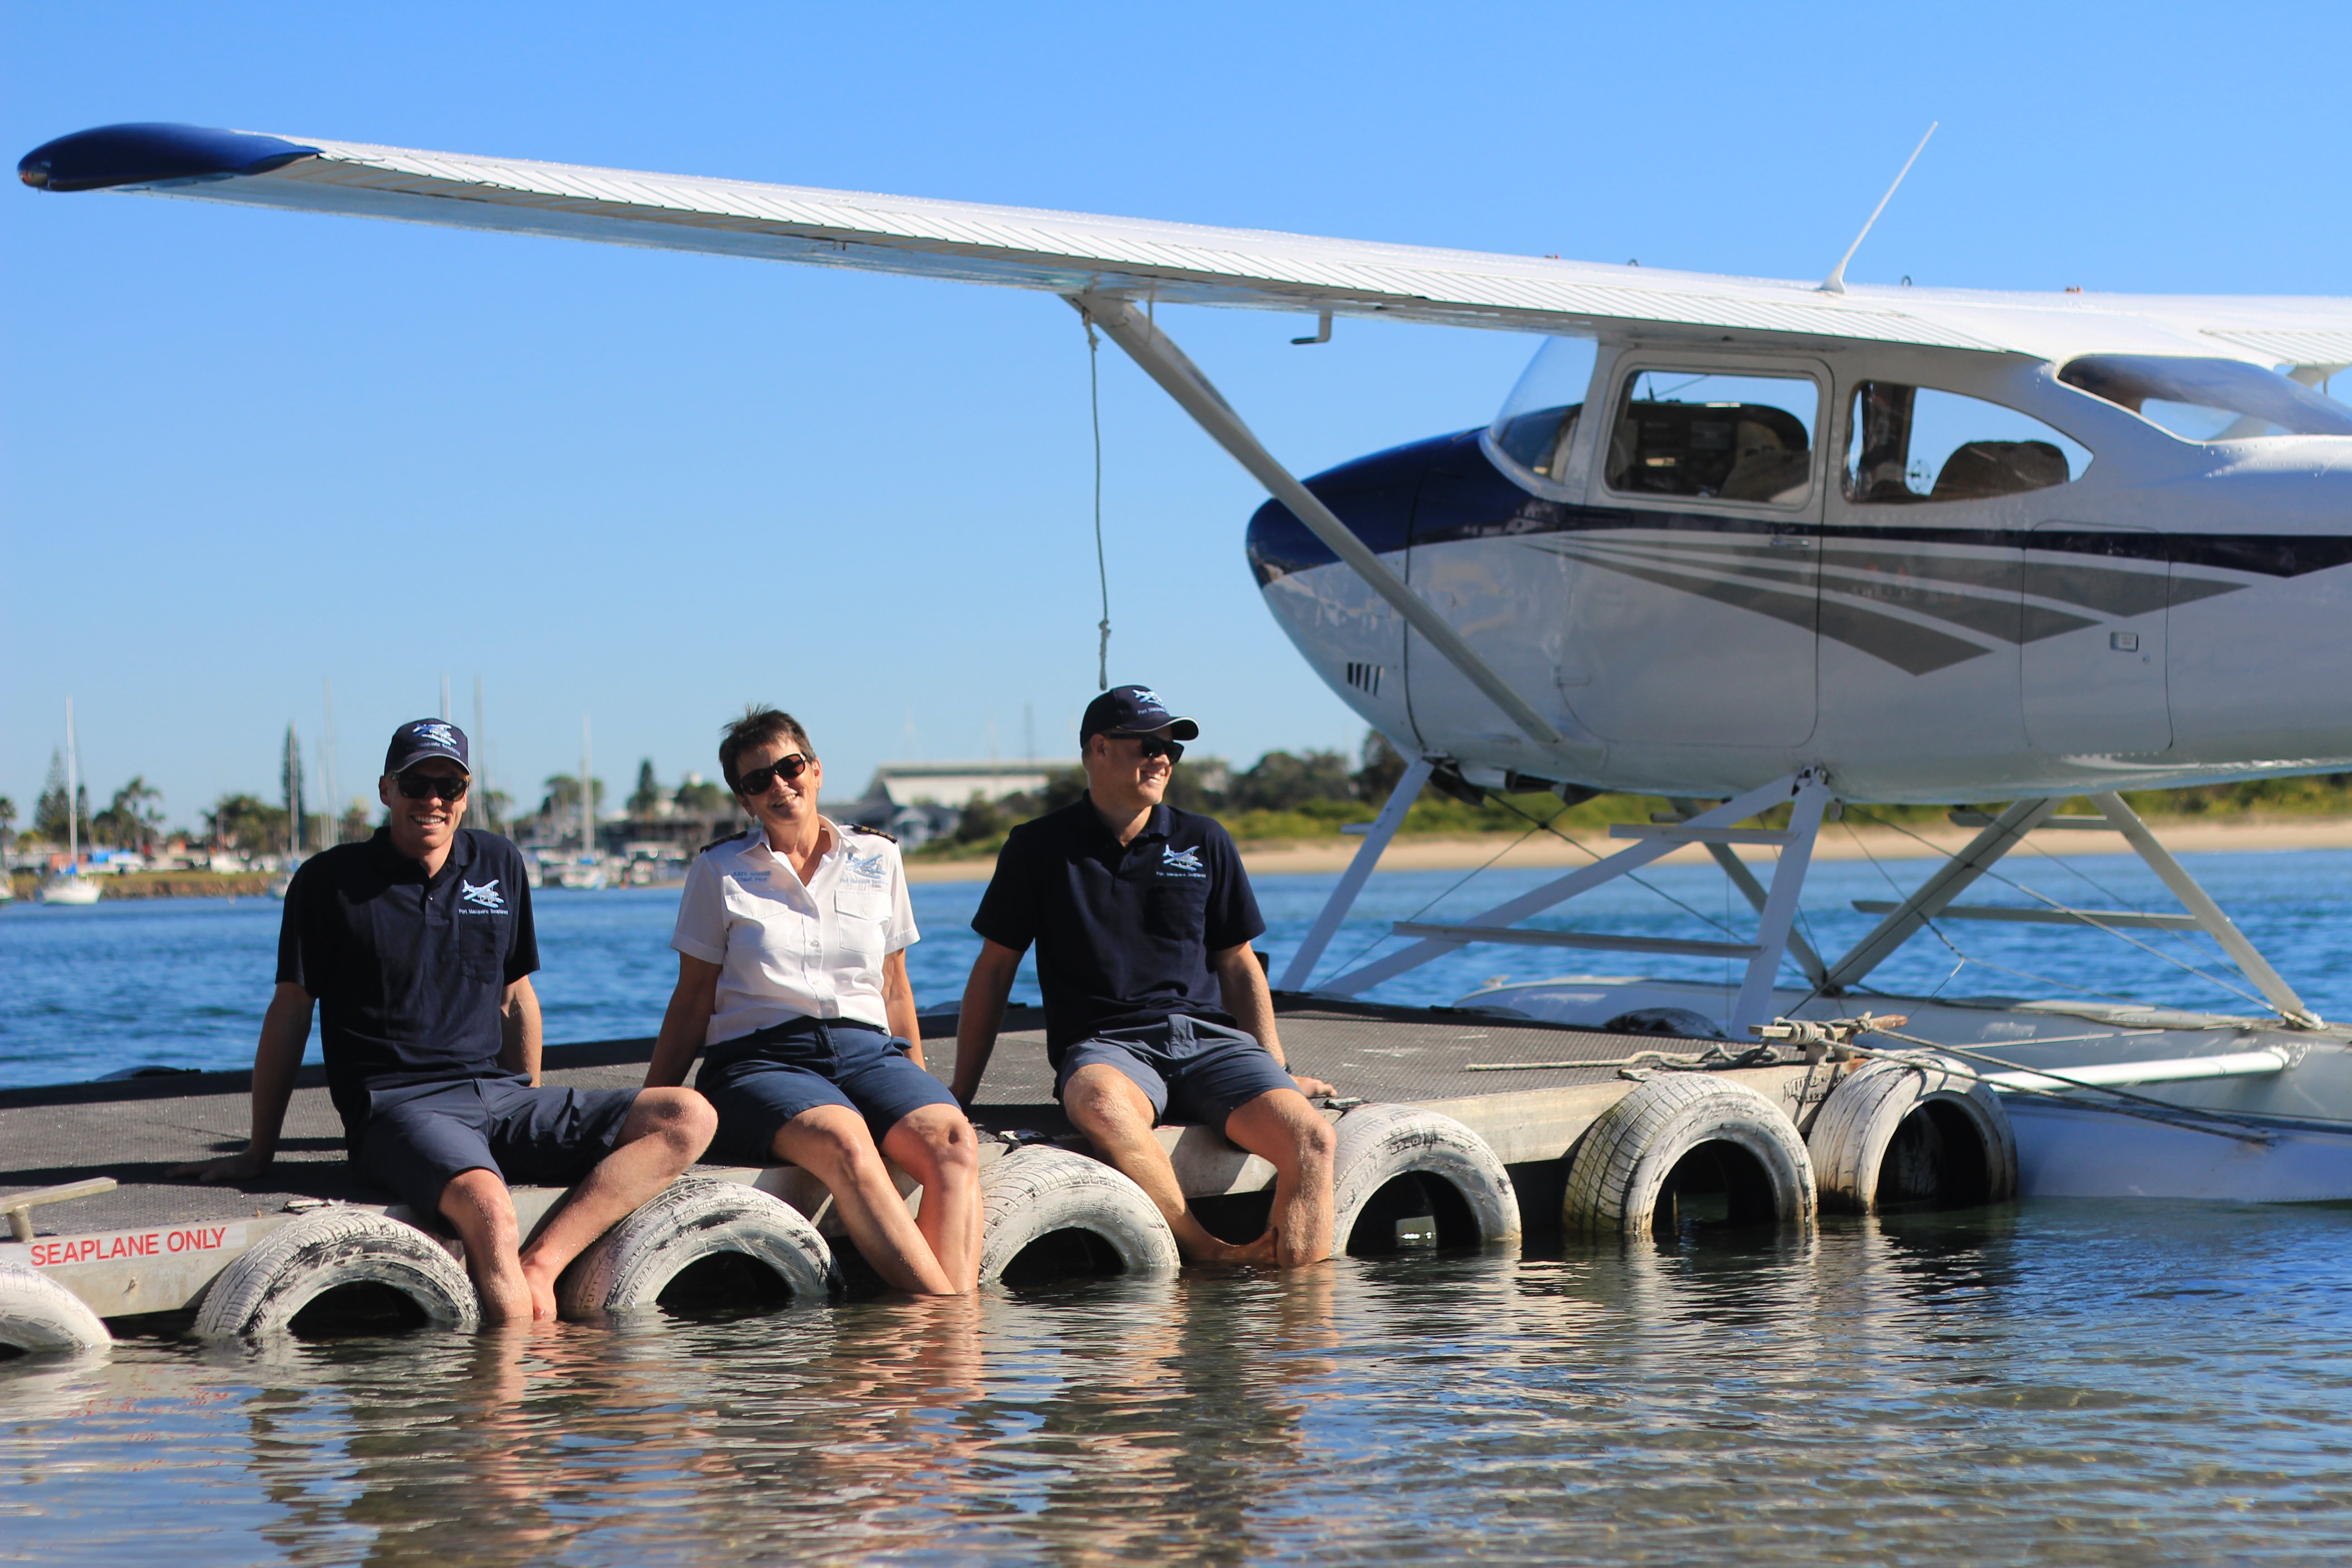 Businesses - Floatplane Business for Sale | Aircraft Listing